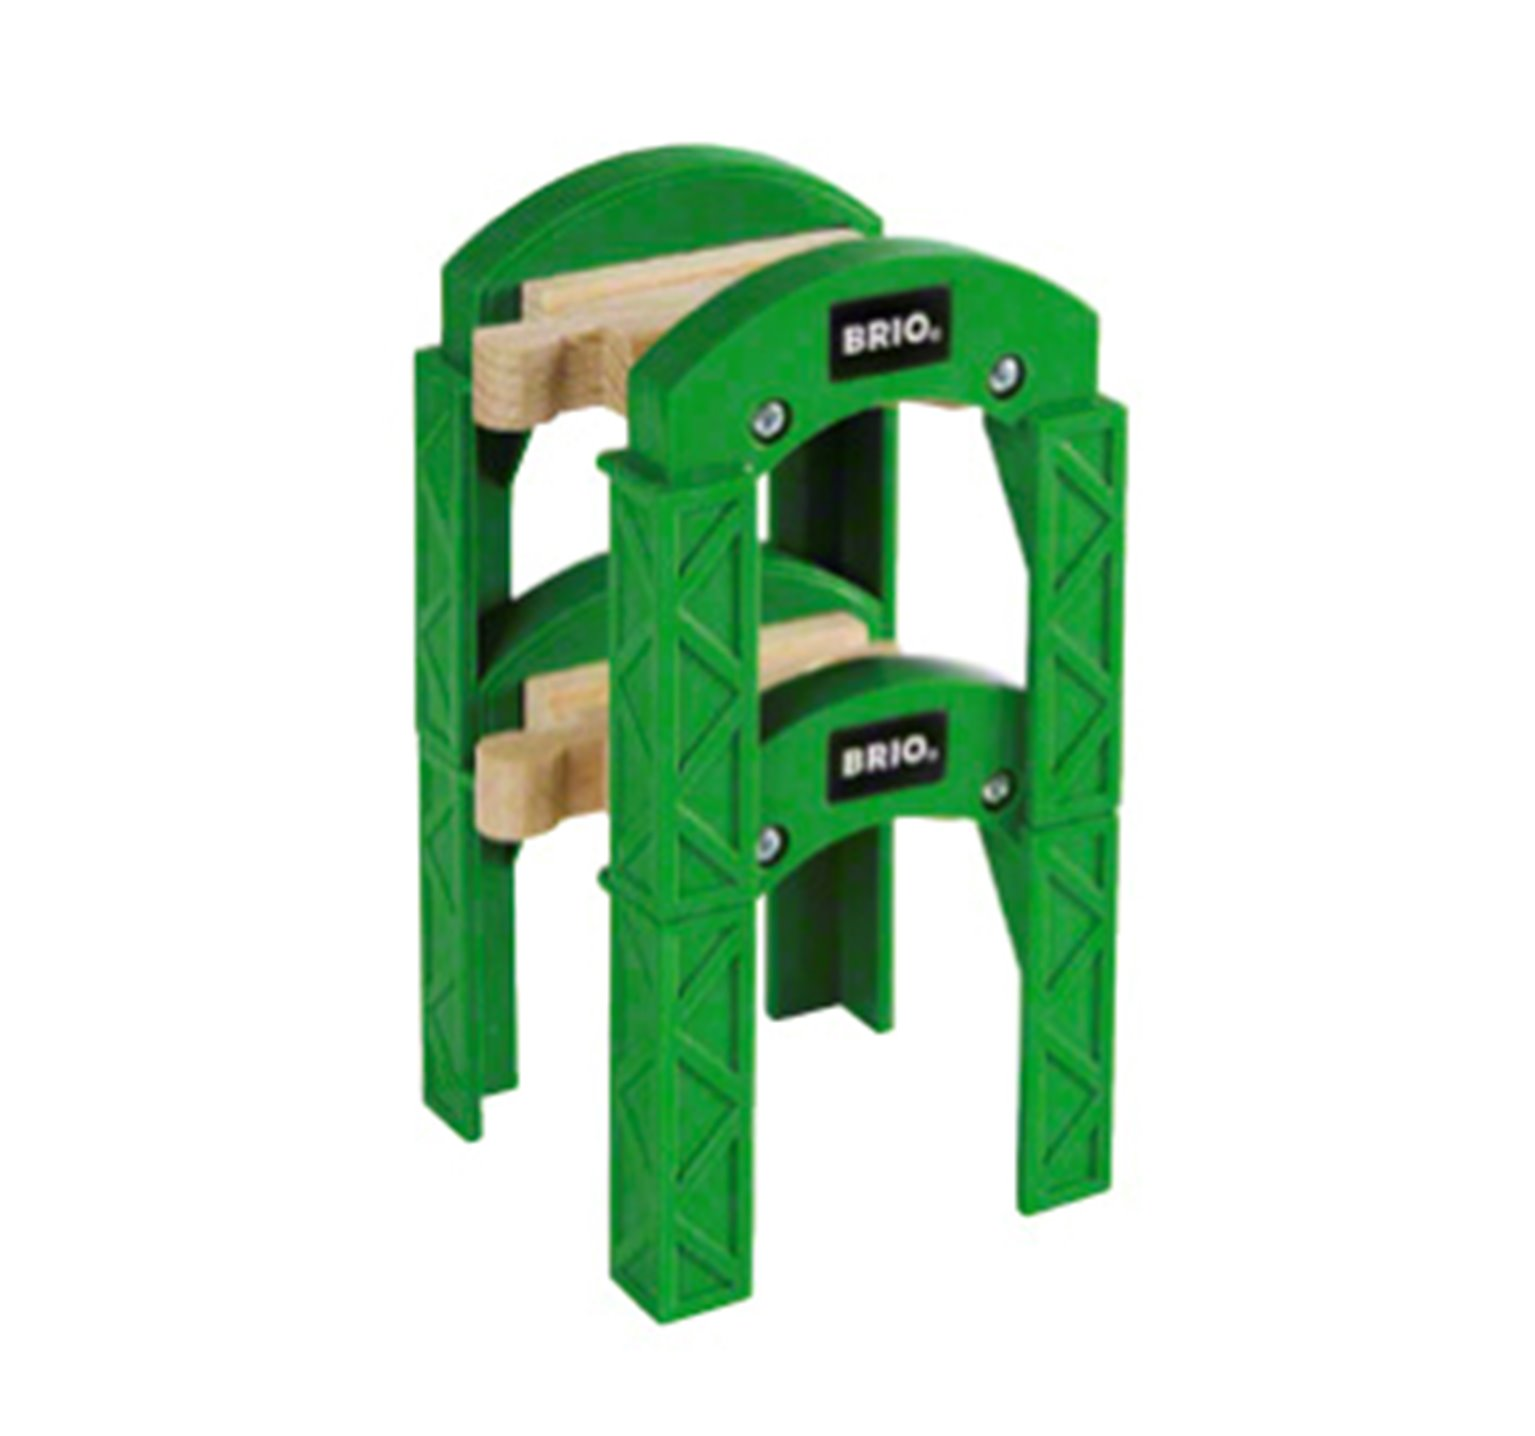 BRIO WORLD - Stacking Track Supports